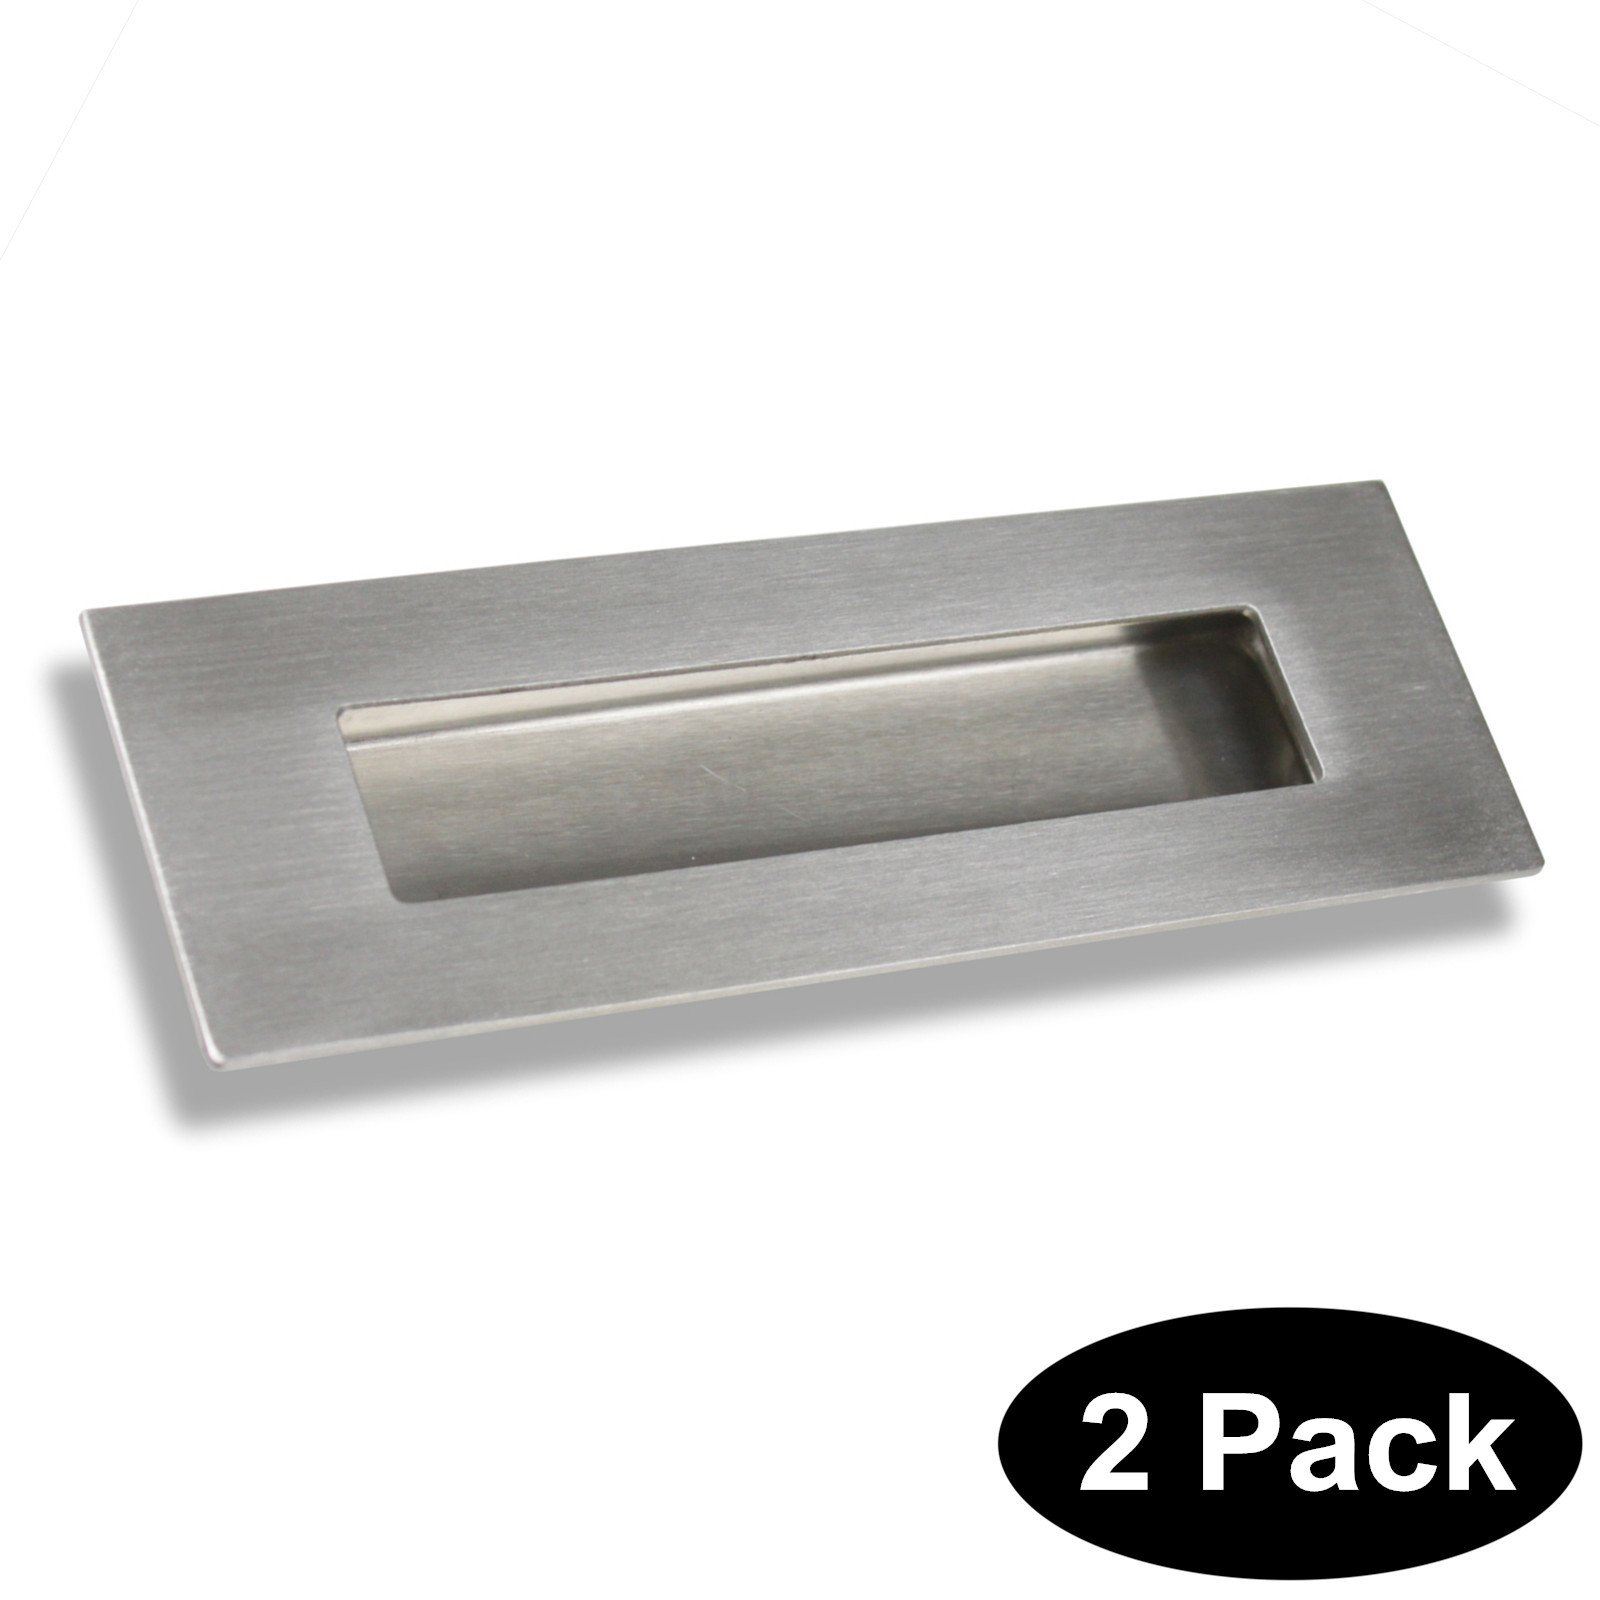 6 in Rectangular Recessed Sliding Door Handles Finger Pulls Flush 304# Stainless Steel 2 Pack